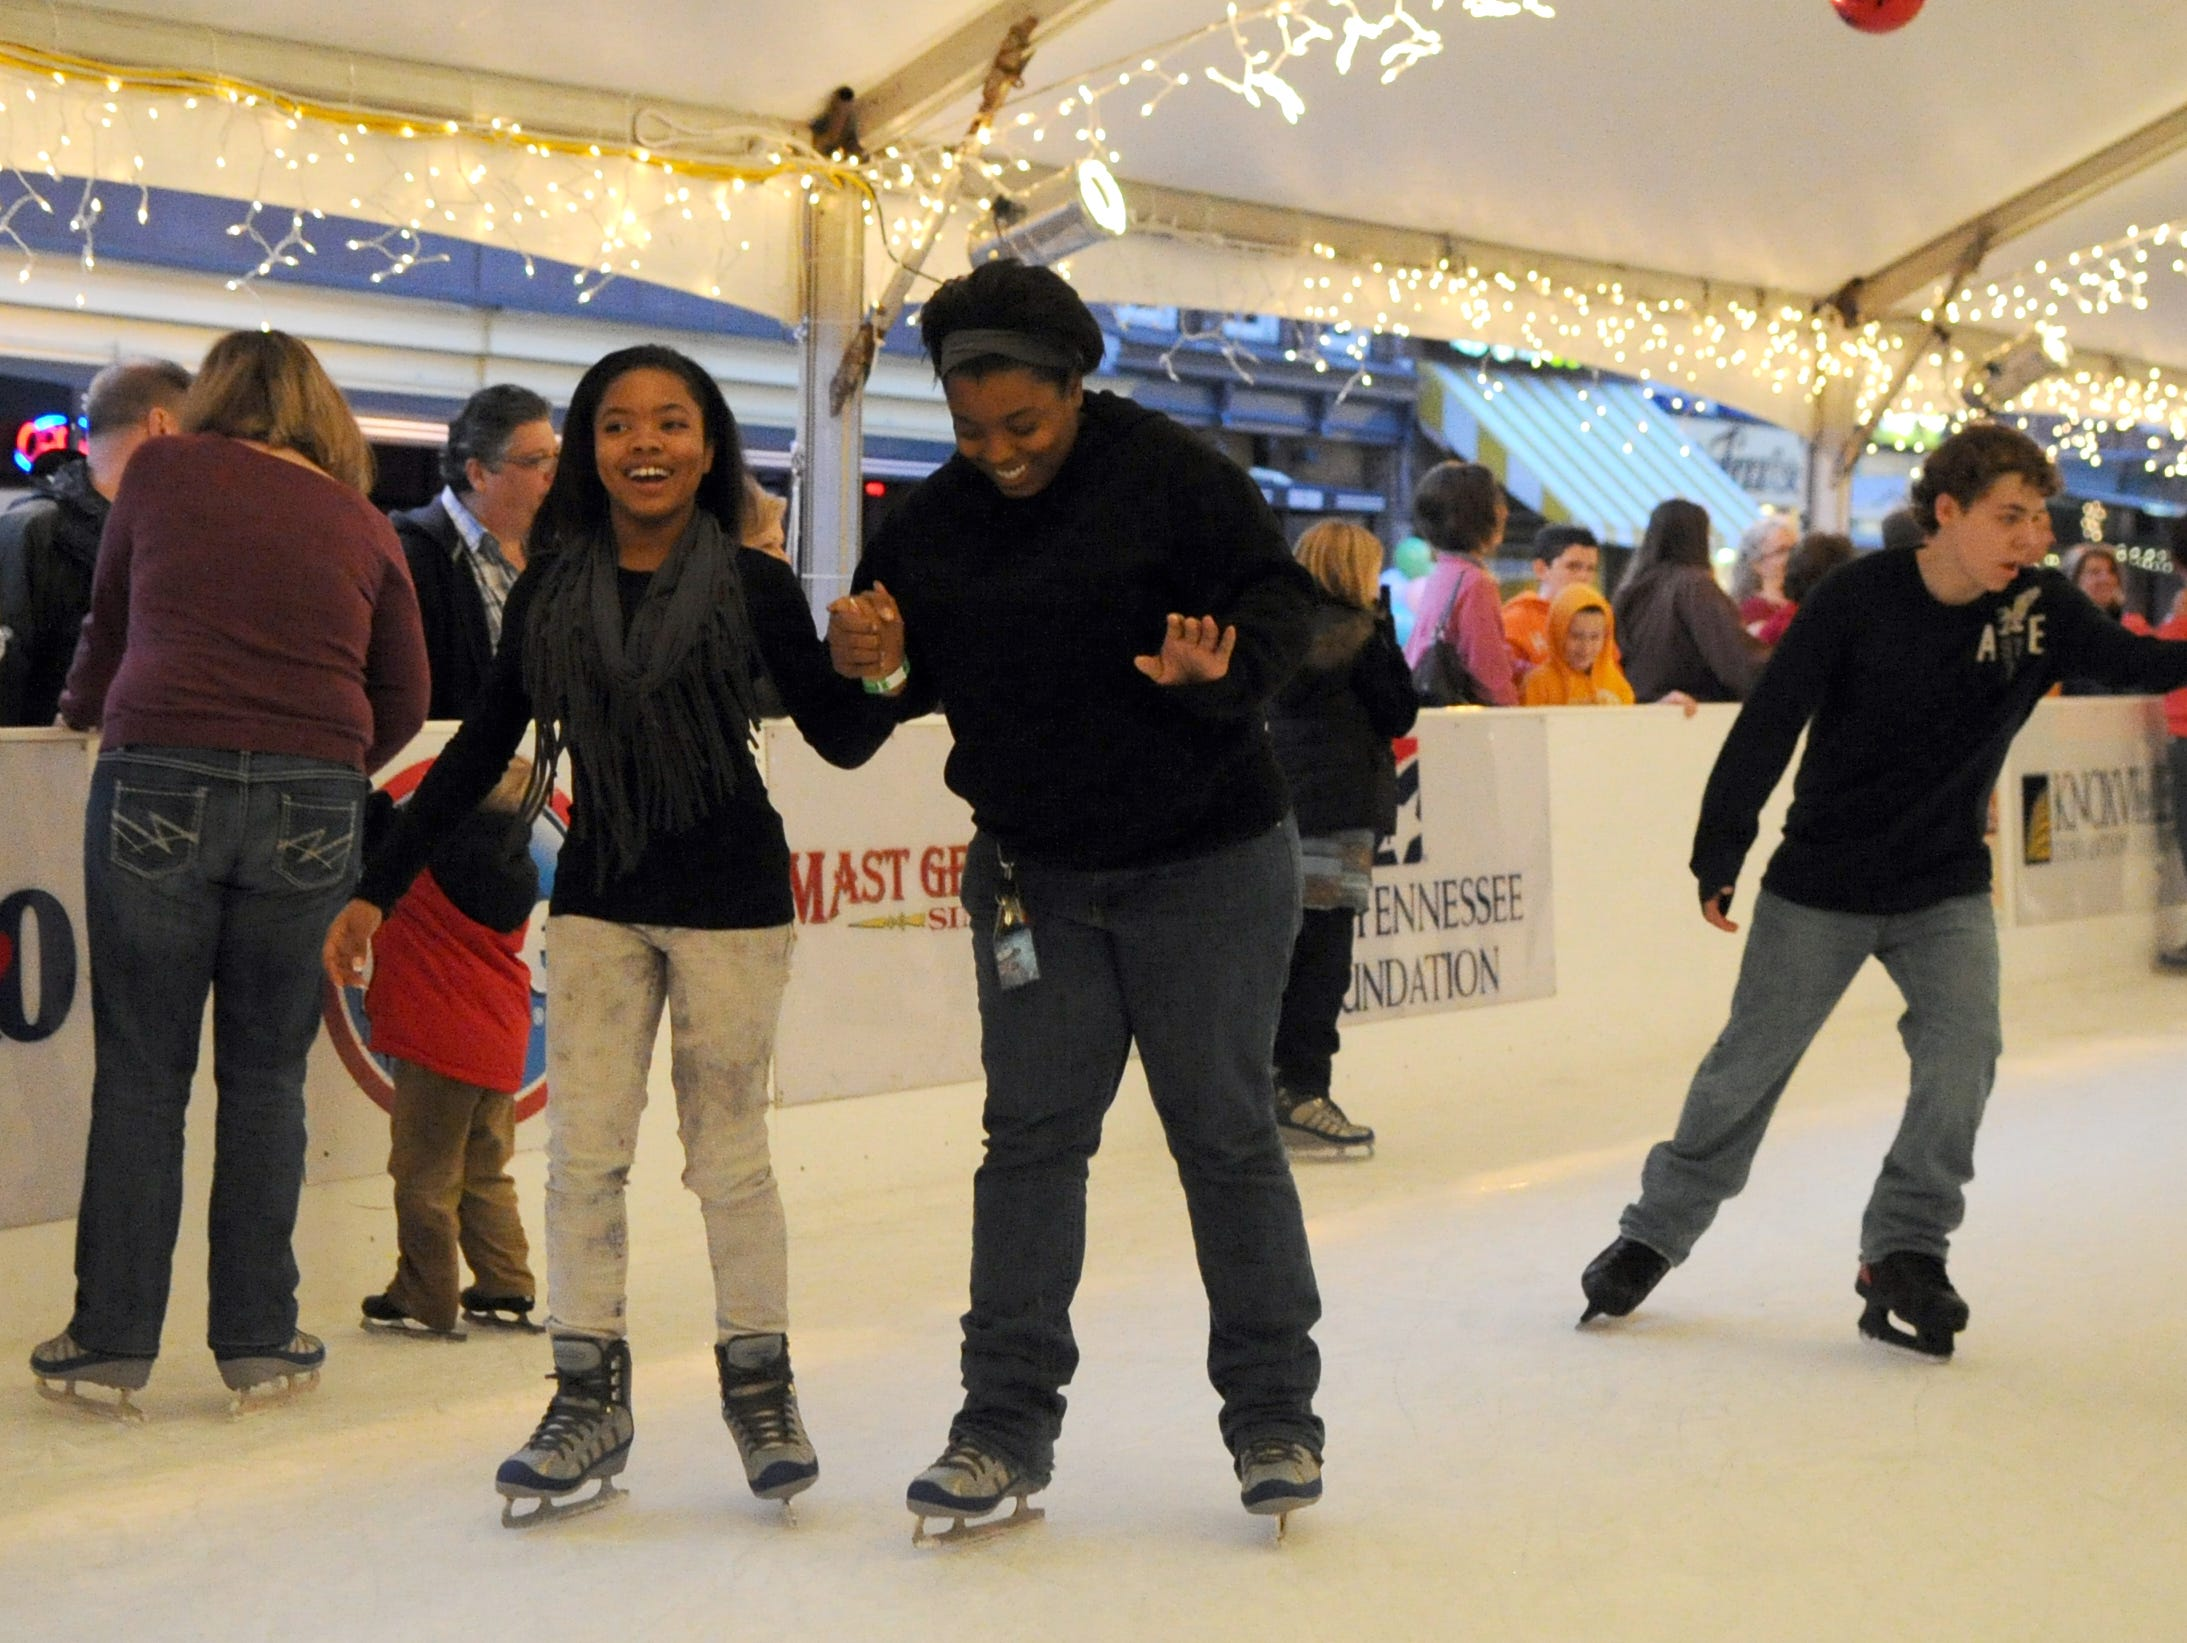 Jada and Courtney Mostella, left to right, skate at the Knoxville's Holidays ice skating rink on Market Square Saturday, Nov. 26, 2011.